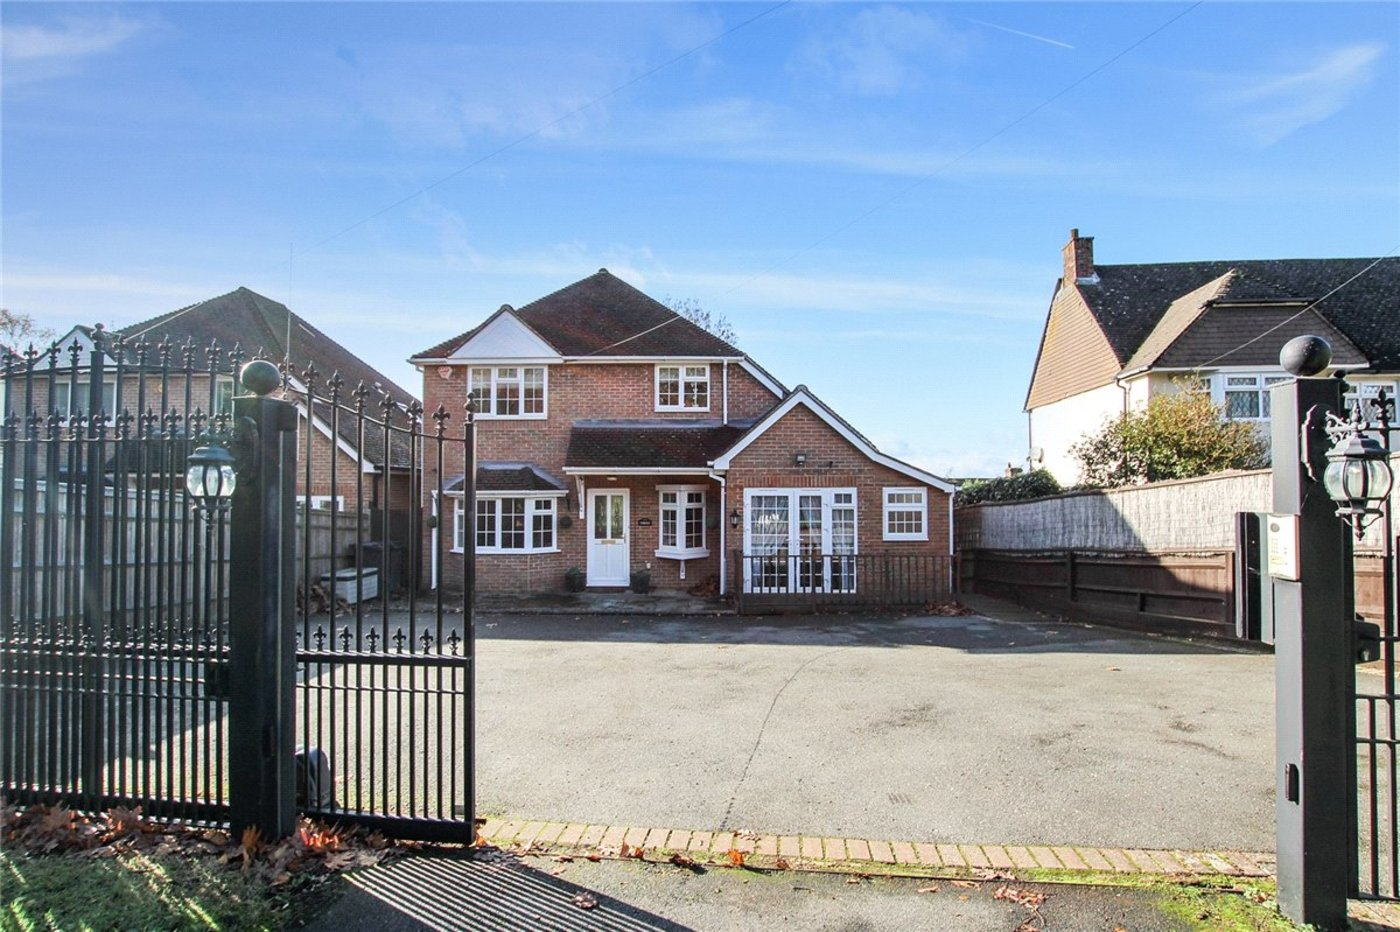 house for sale in Badgers Mount, Sevenoaks, TN14 ...